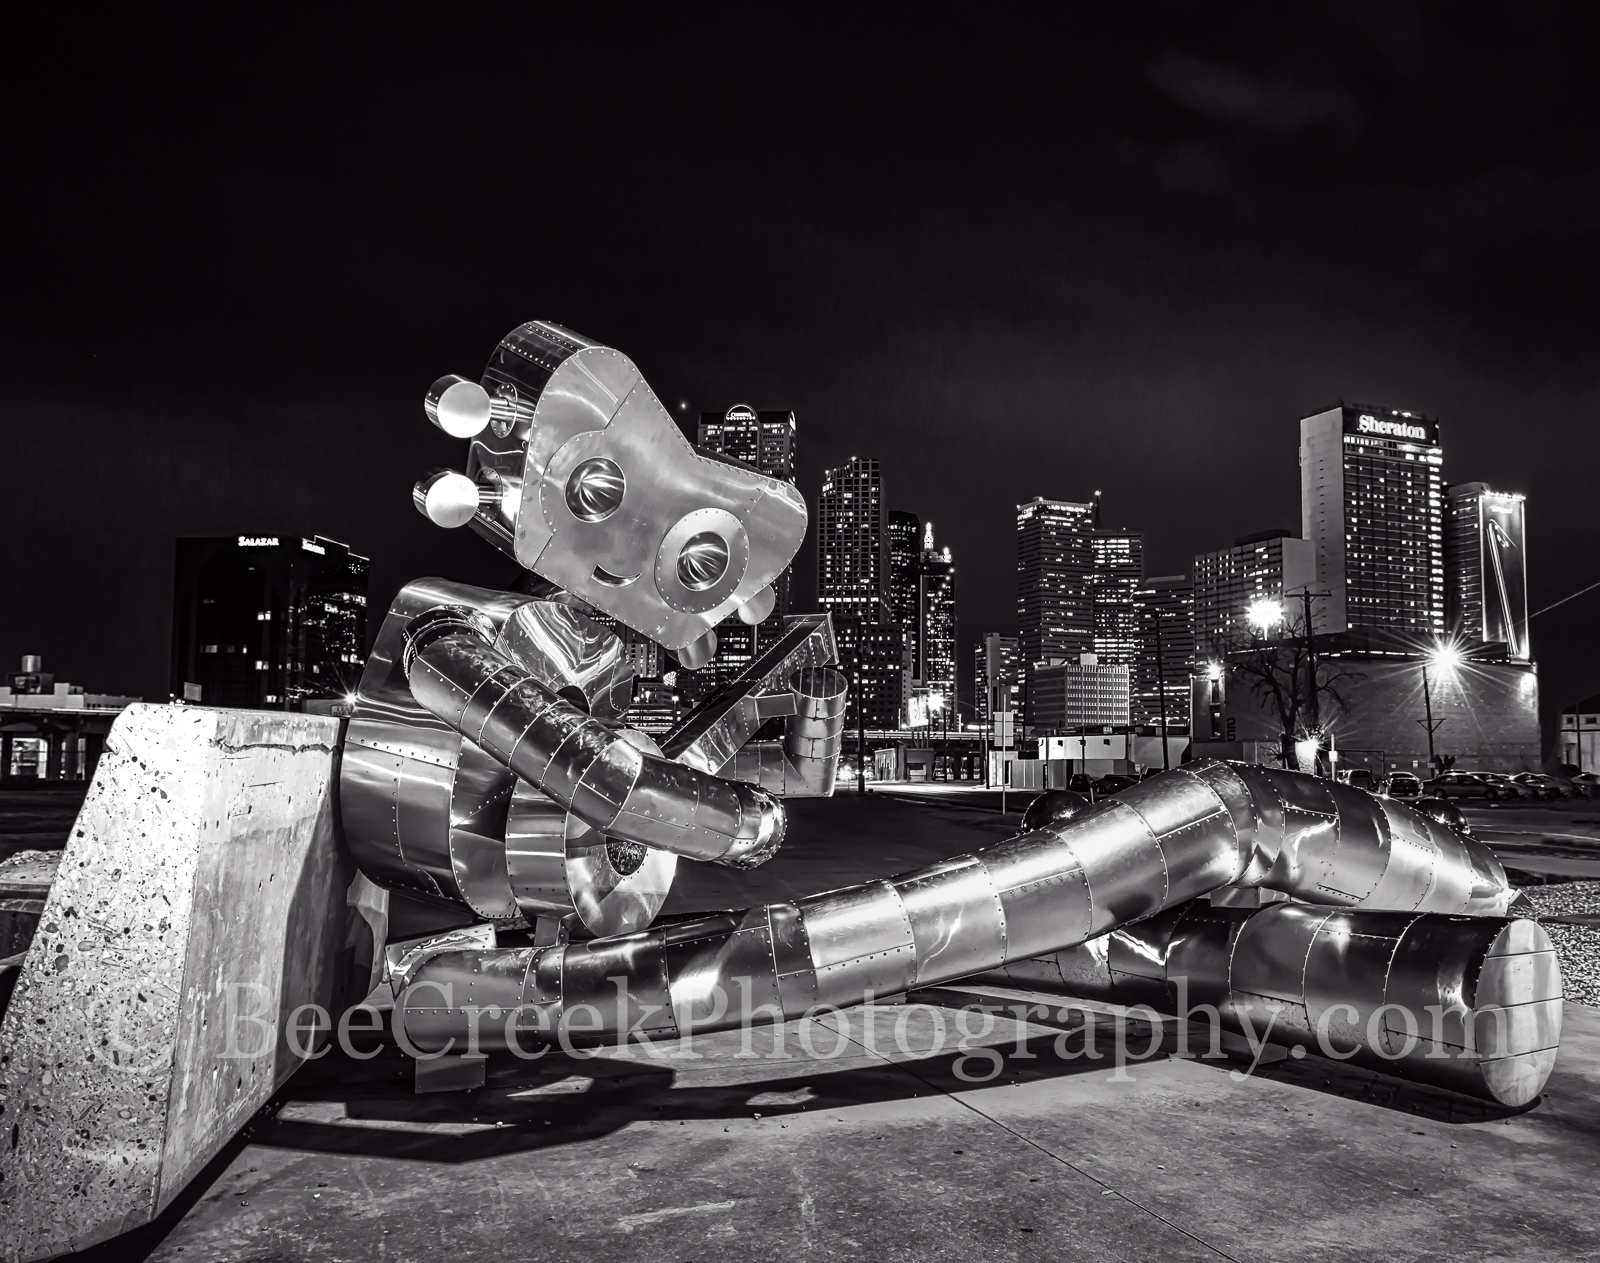 Dallas, traveling man, sitting sculpture, banjo, robo, skyline, skylines, cityscape, cityscapes, downtown,  modern, urban, night, robot, deep ellum, mass trasit, train, nuts, bolts, , photo